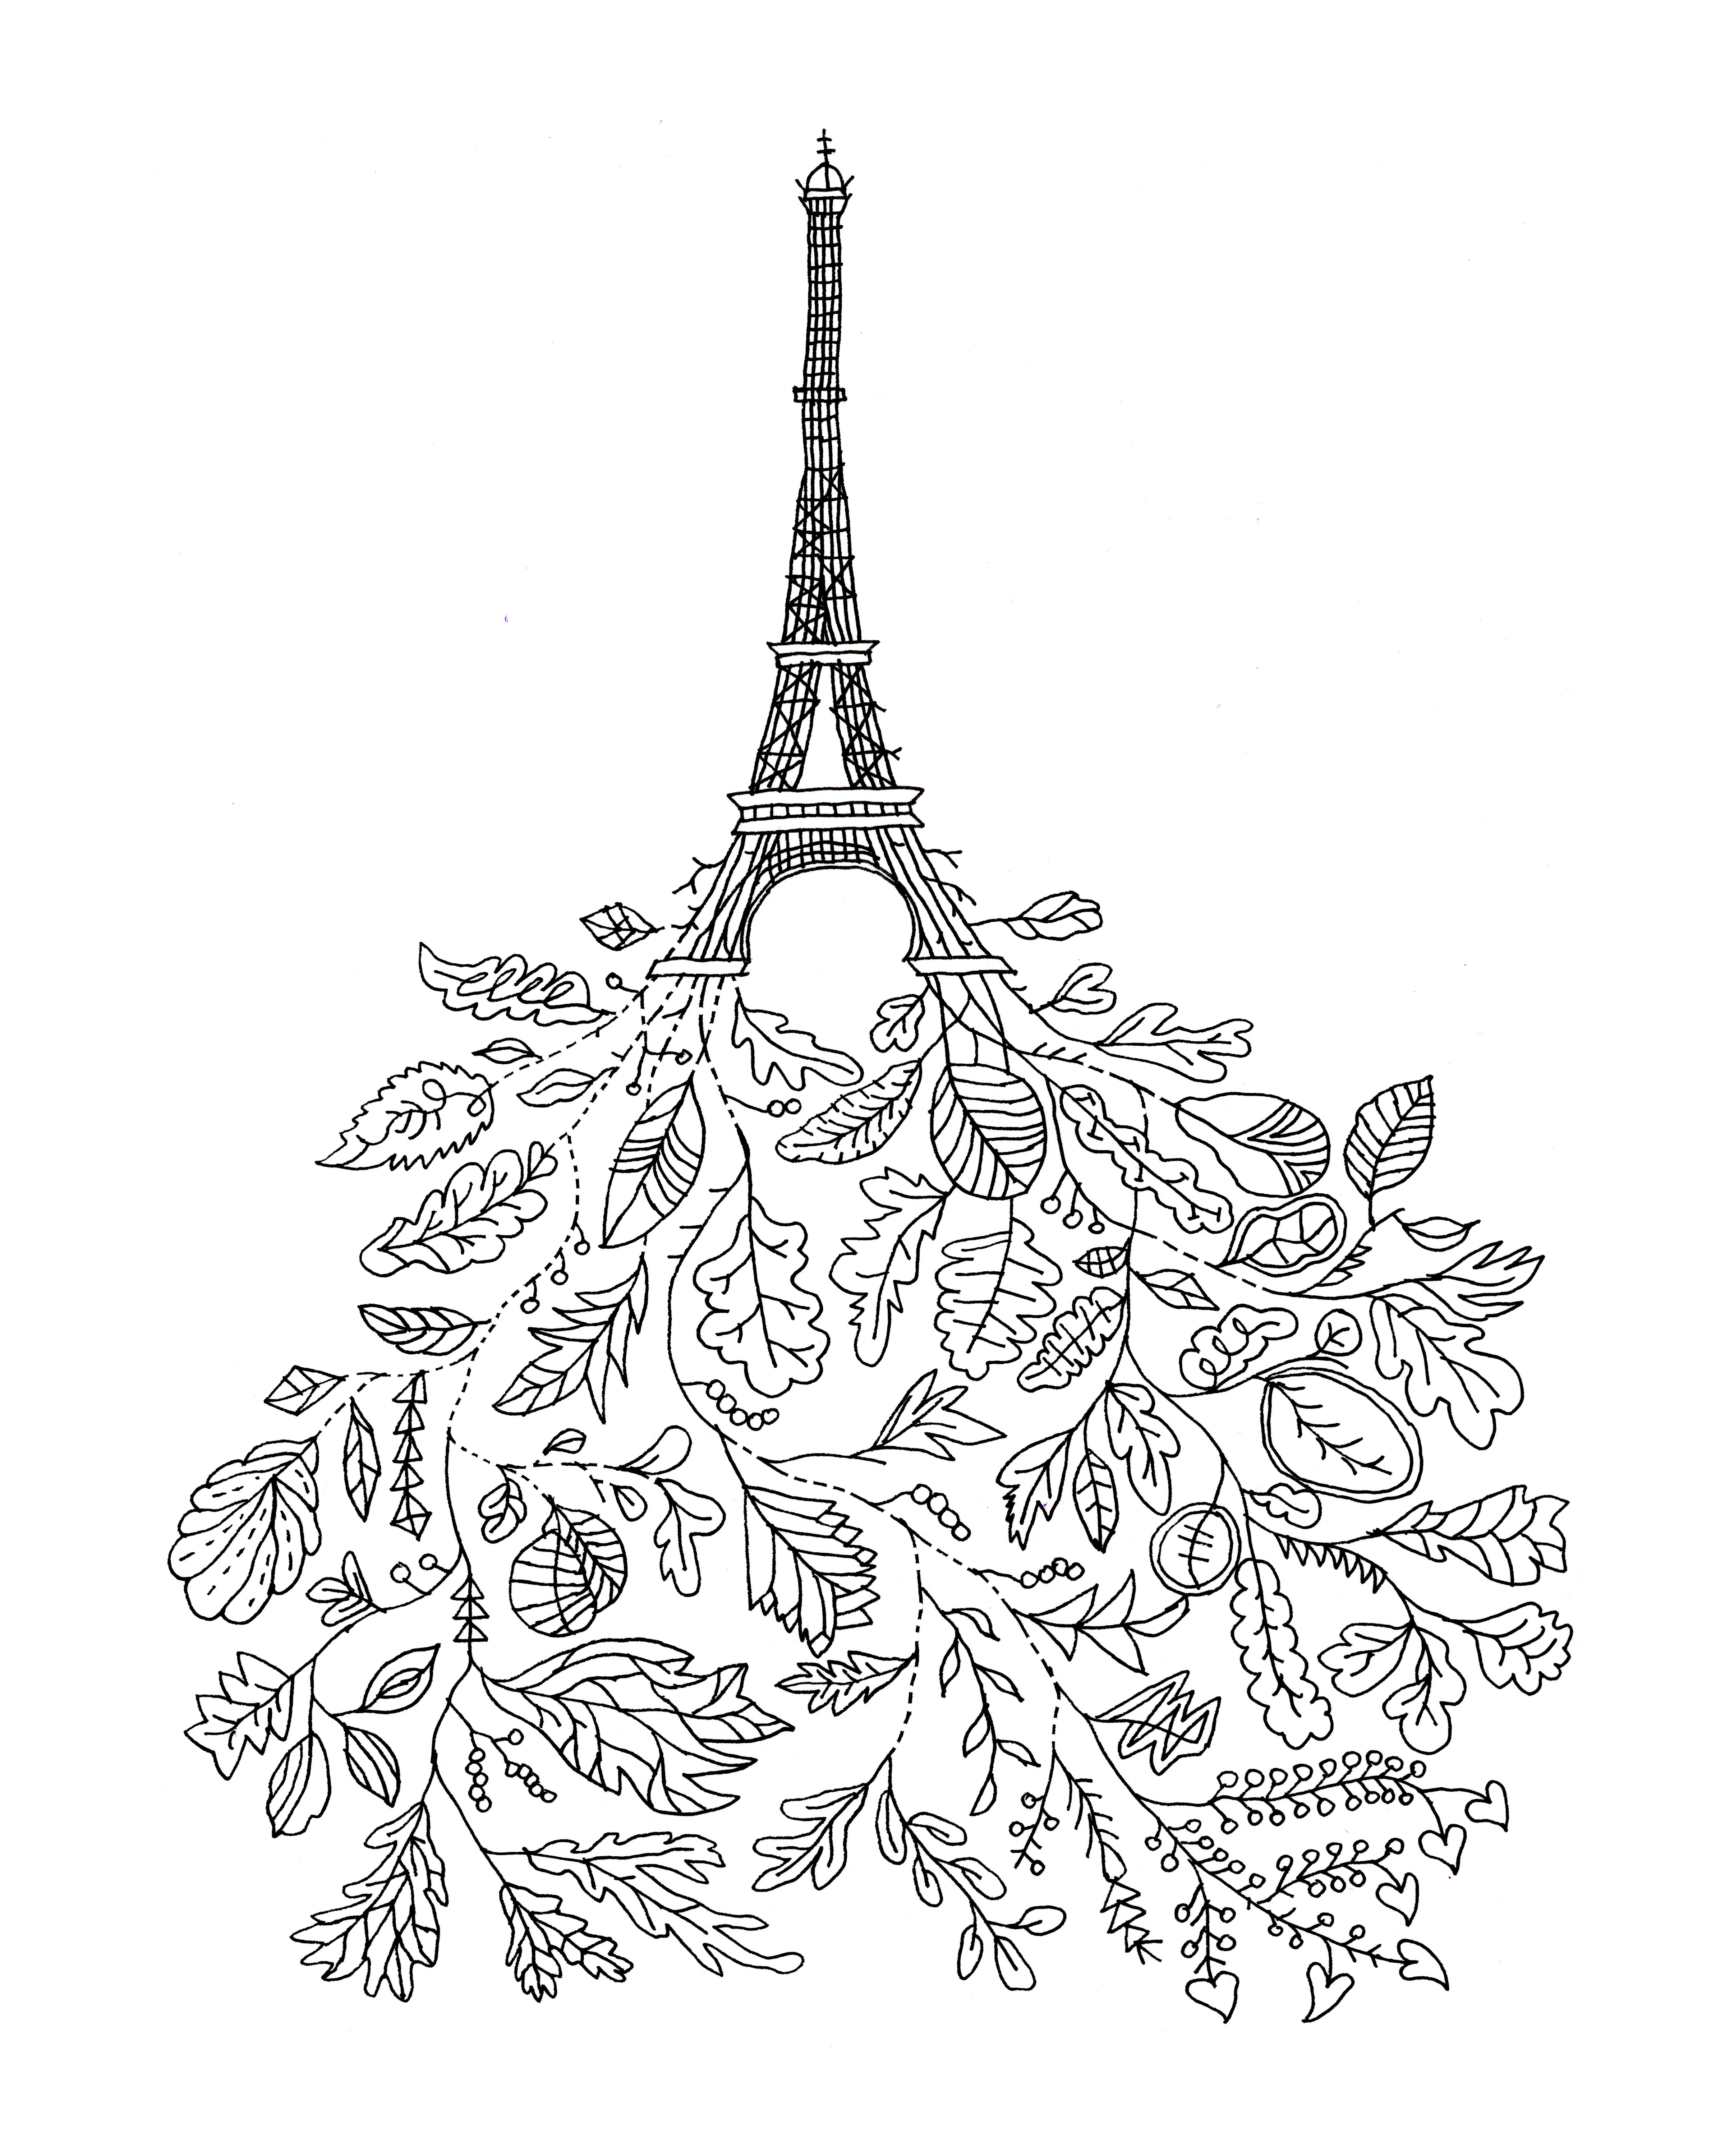 Abstract Line Drawing Page 5988 The 10000 Colouring Book Eiffel Tower Fallen Leaves Free For Adults And Children